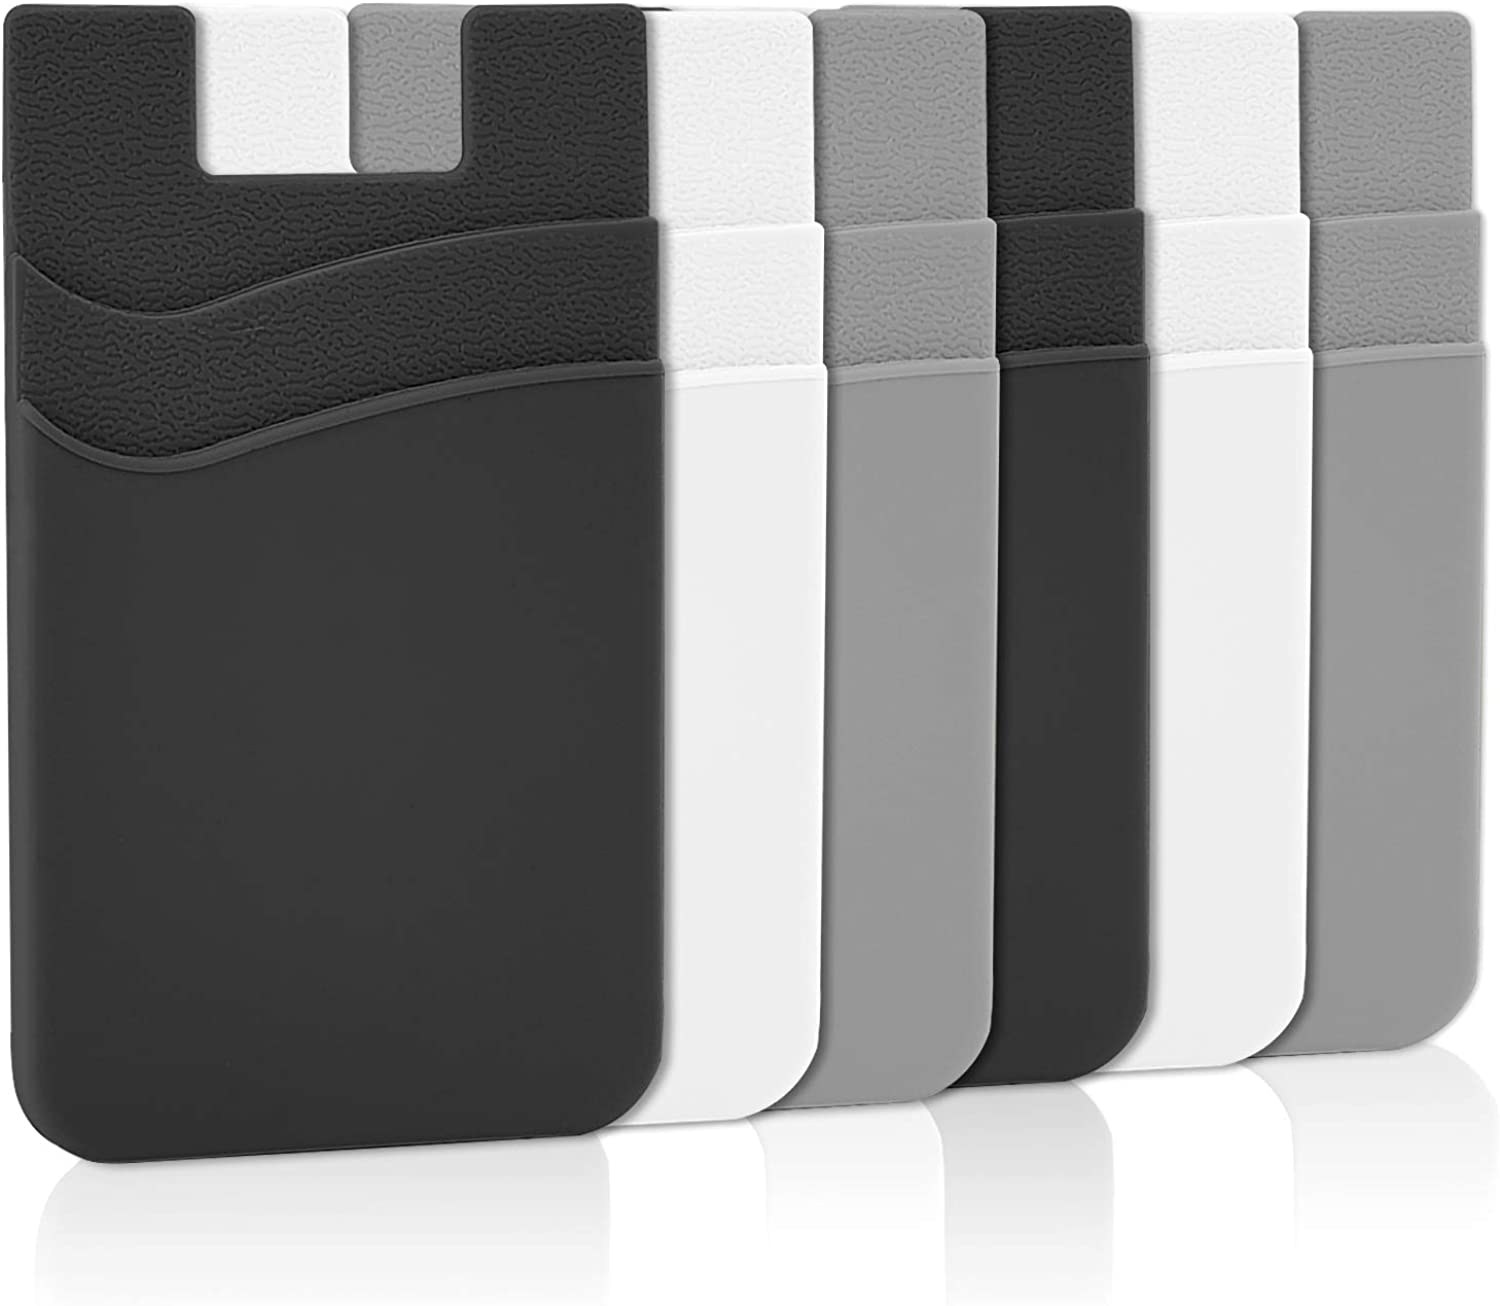 Senose Card Holder for Back of Phone Stick on Phone Cases Great Storage Compatible with iPhone//Android//Samsung Galaxy Pack of 5 Phone Wallet